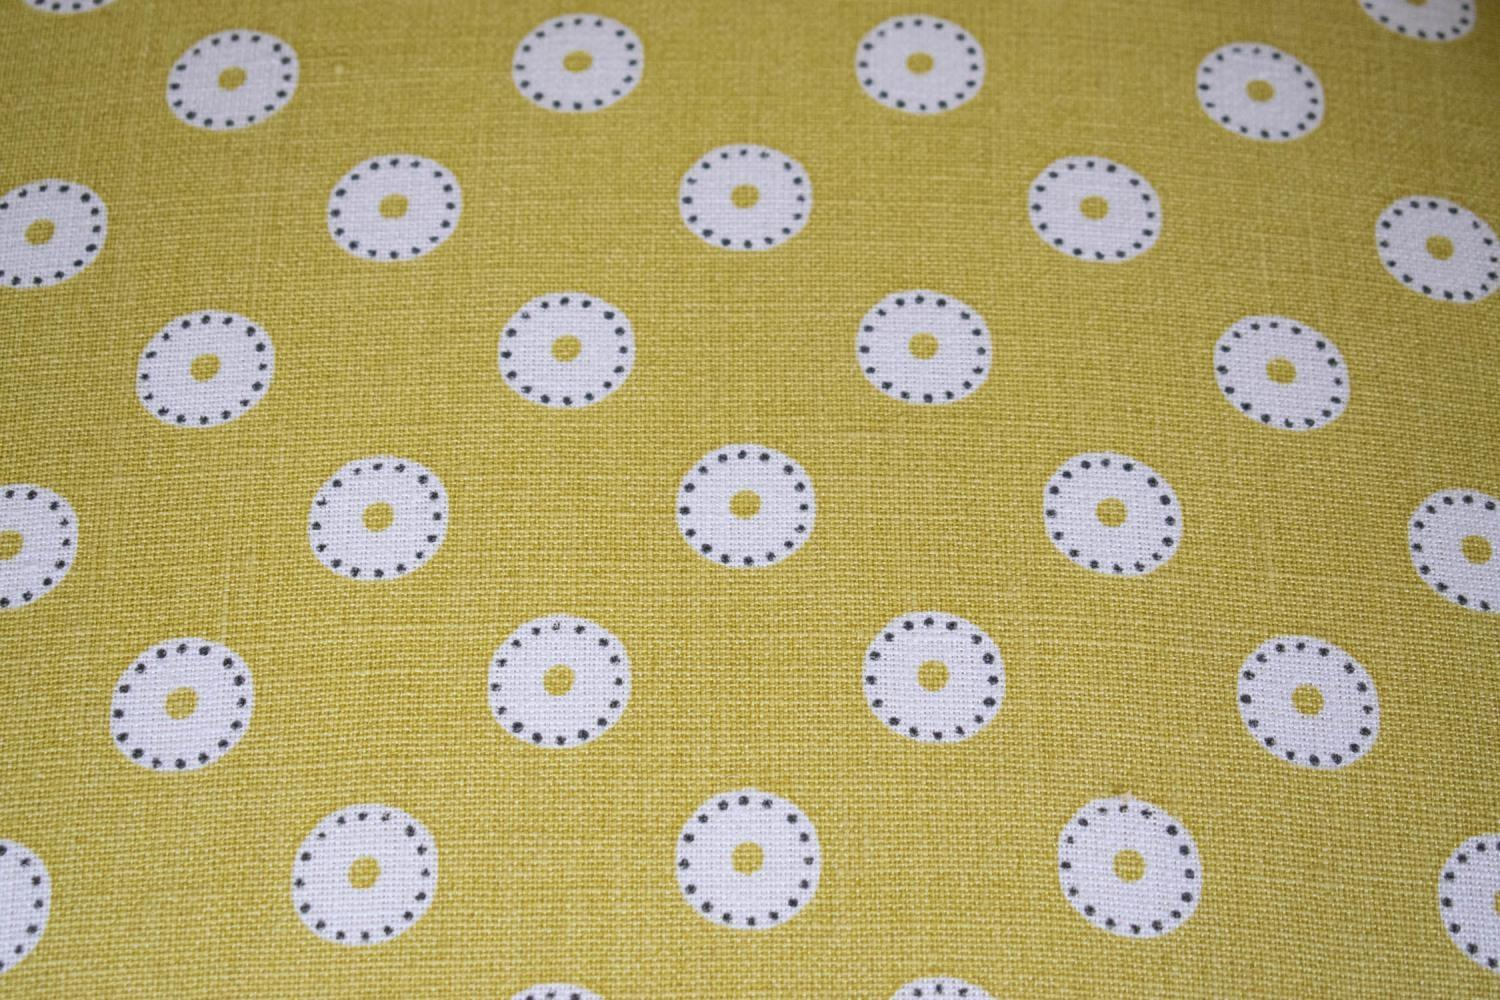 ARMCHAIR, Georgian style in yellow and white dot patterned fabric, 86cm H x 66cm x 66cm. - Image 3 of 3